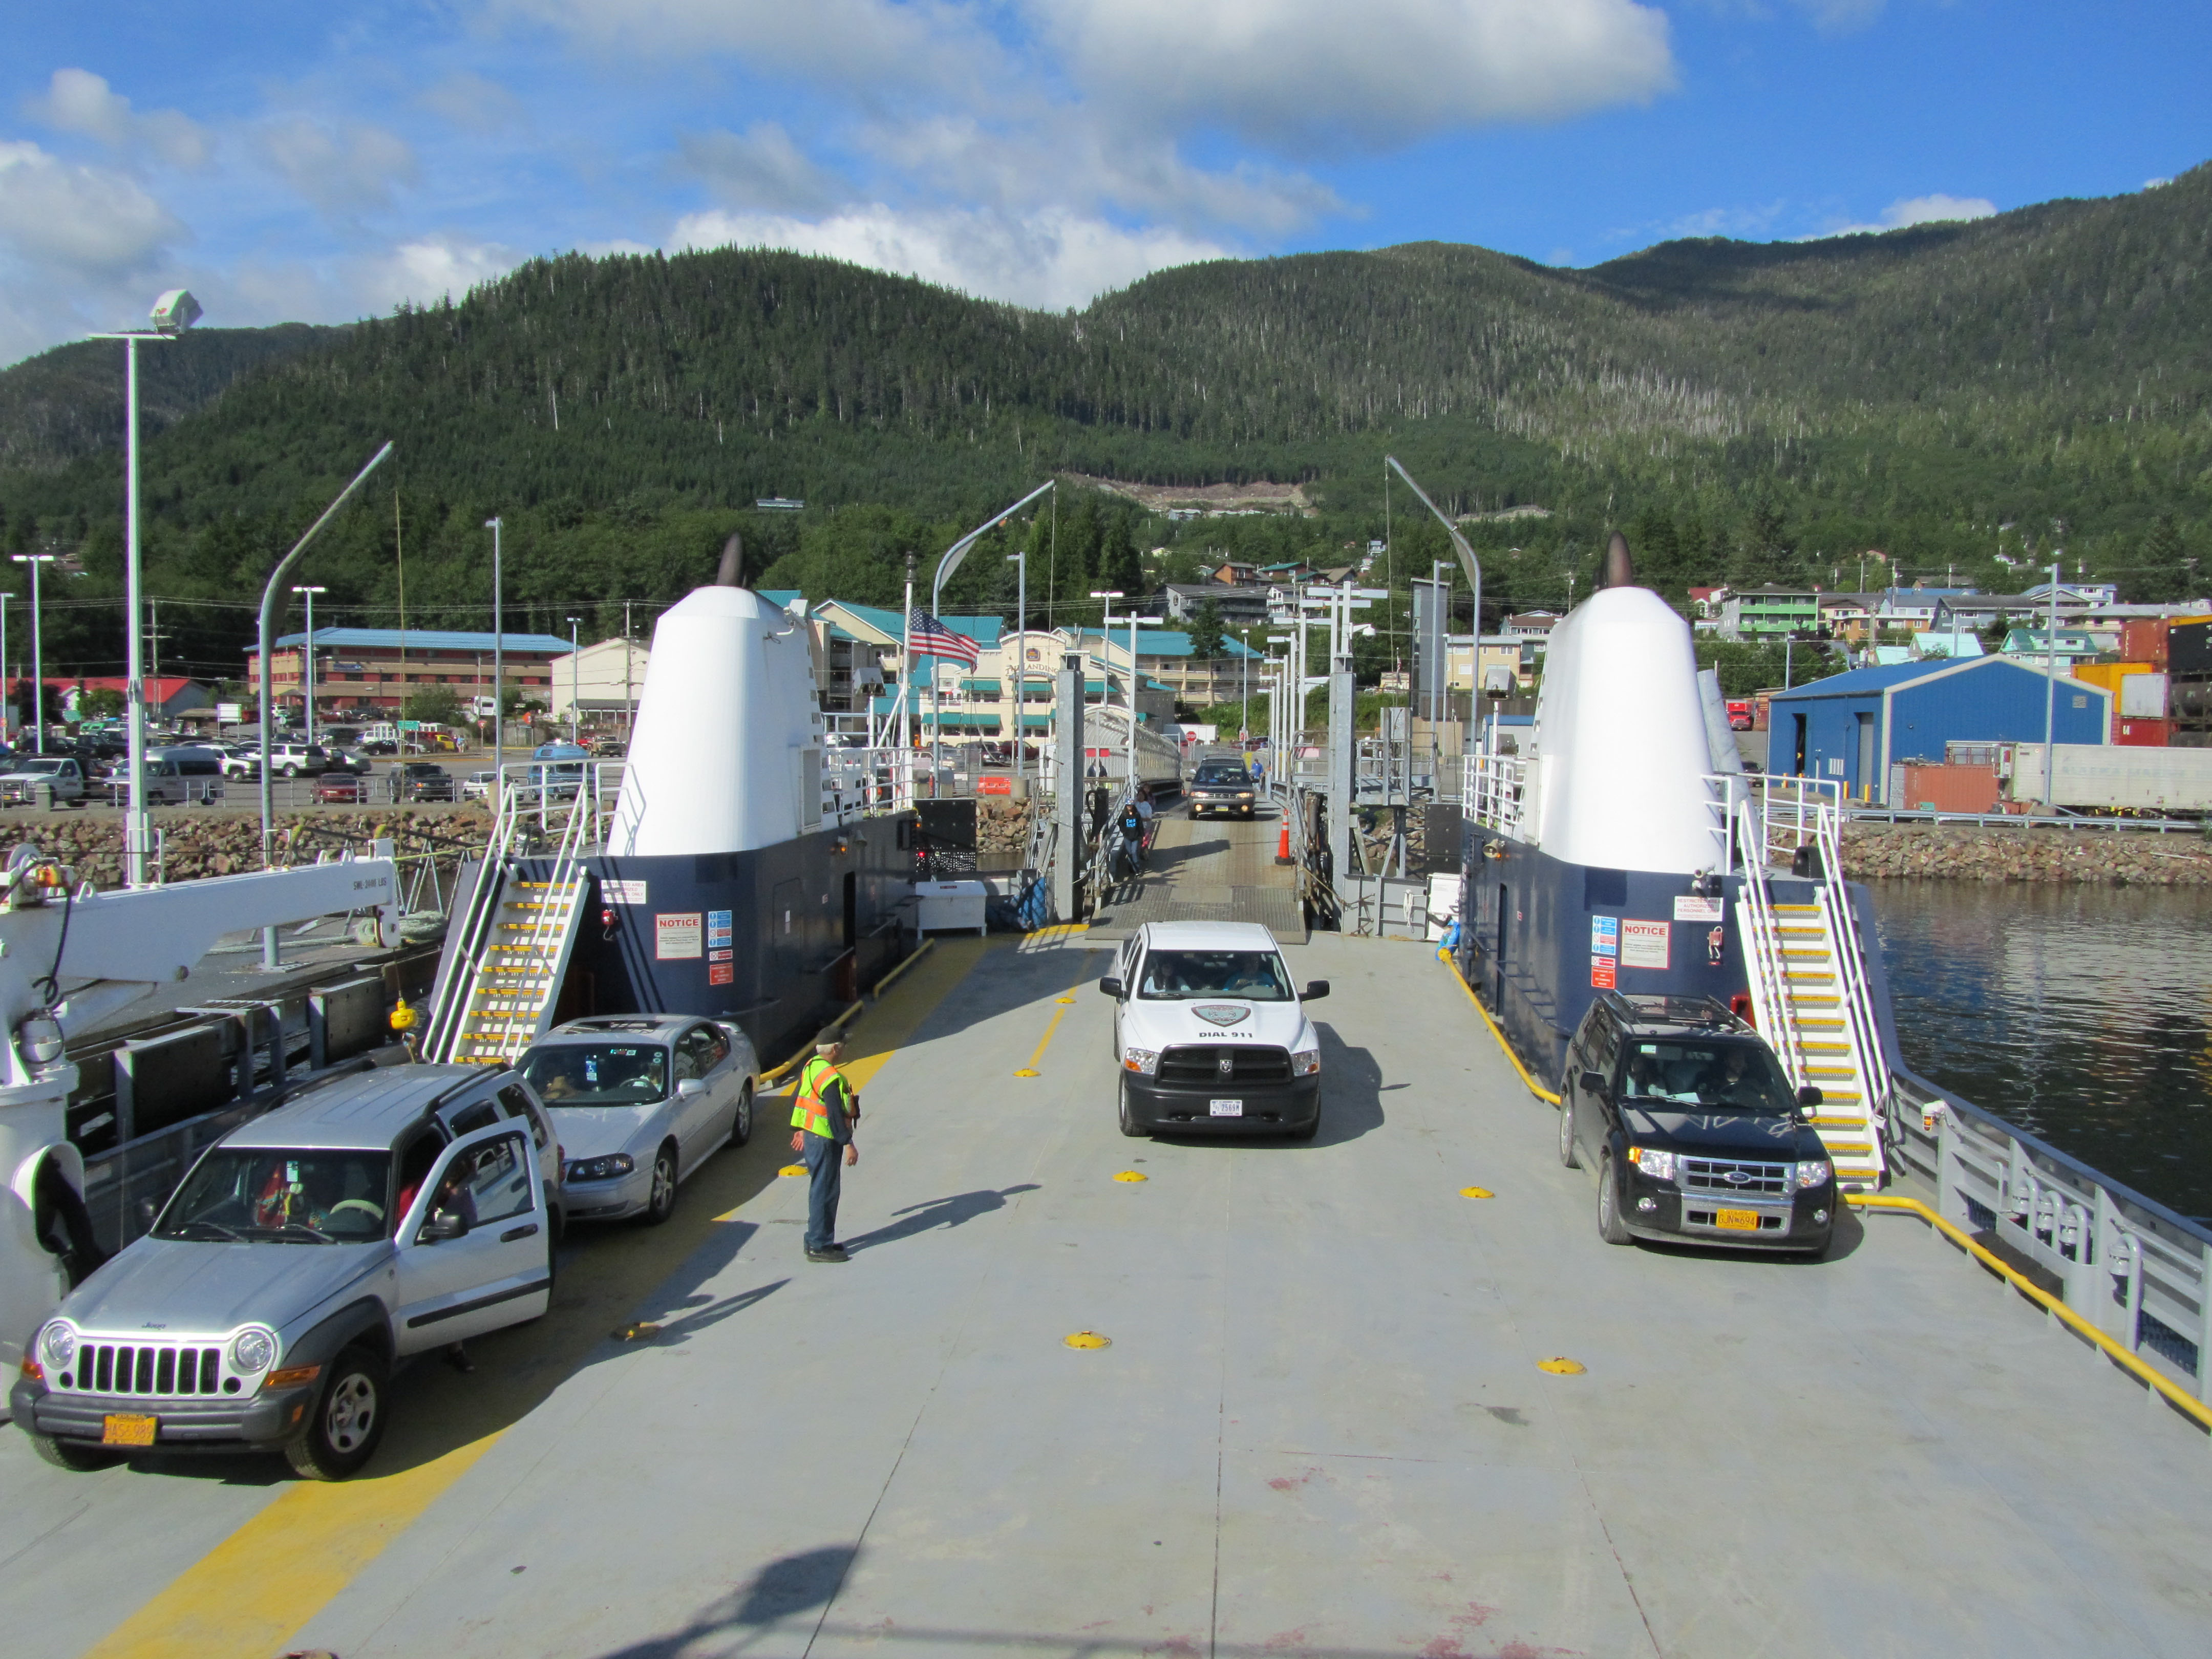 The ferry Lituya loads vehicles onto its car deck at the Ketchikan Ferry Terminal before sailing to Metlakatla. (Photo by Linda Hall/Alaska DOT&PF)